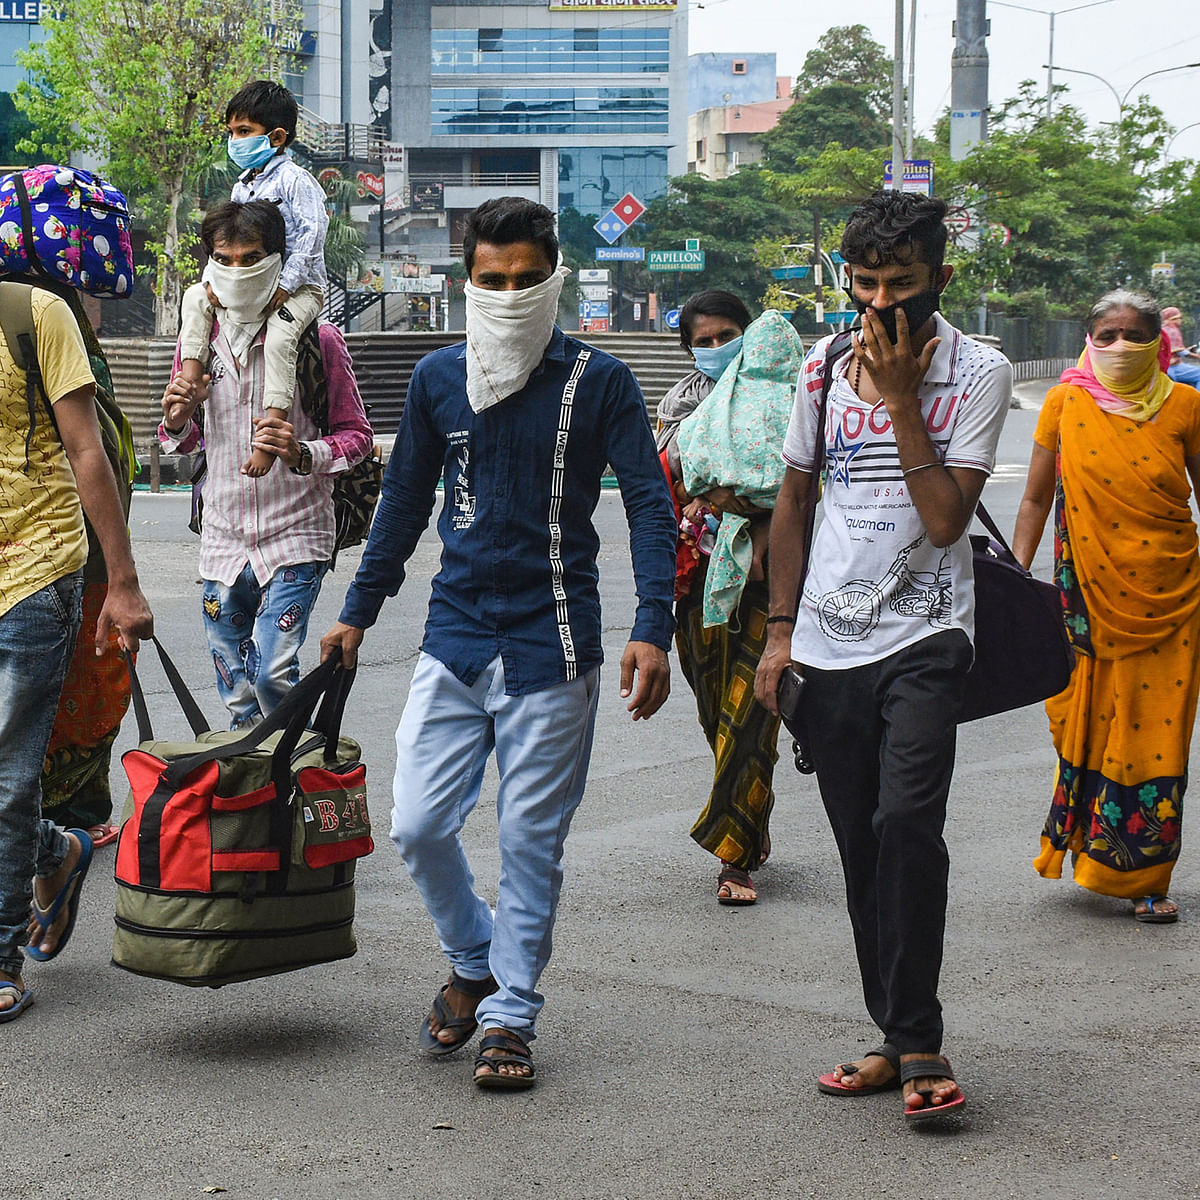 Amid the coronavirus outbreak, here's India's toughest question: Can India's slum dwellers follow a lockdown?